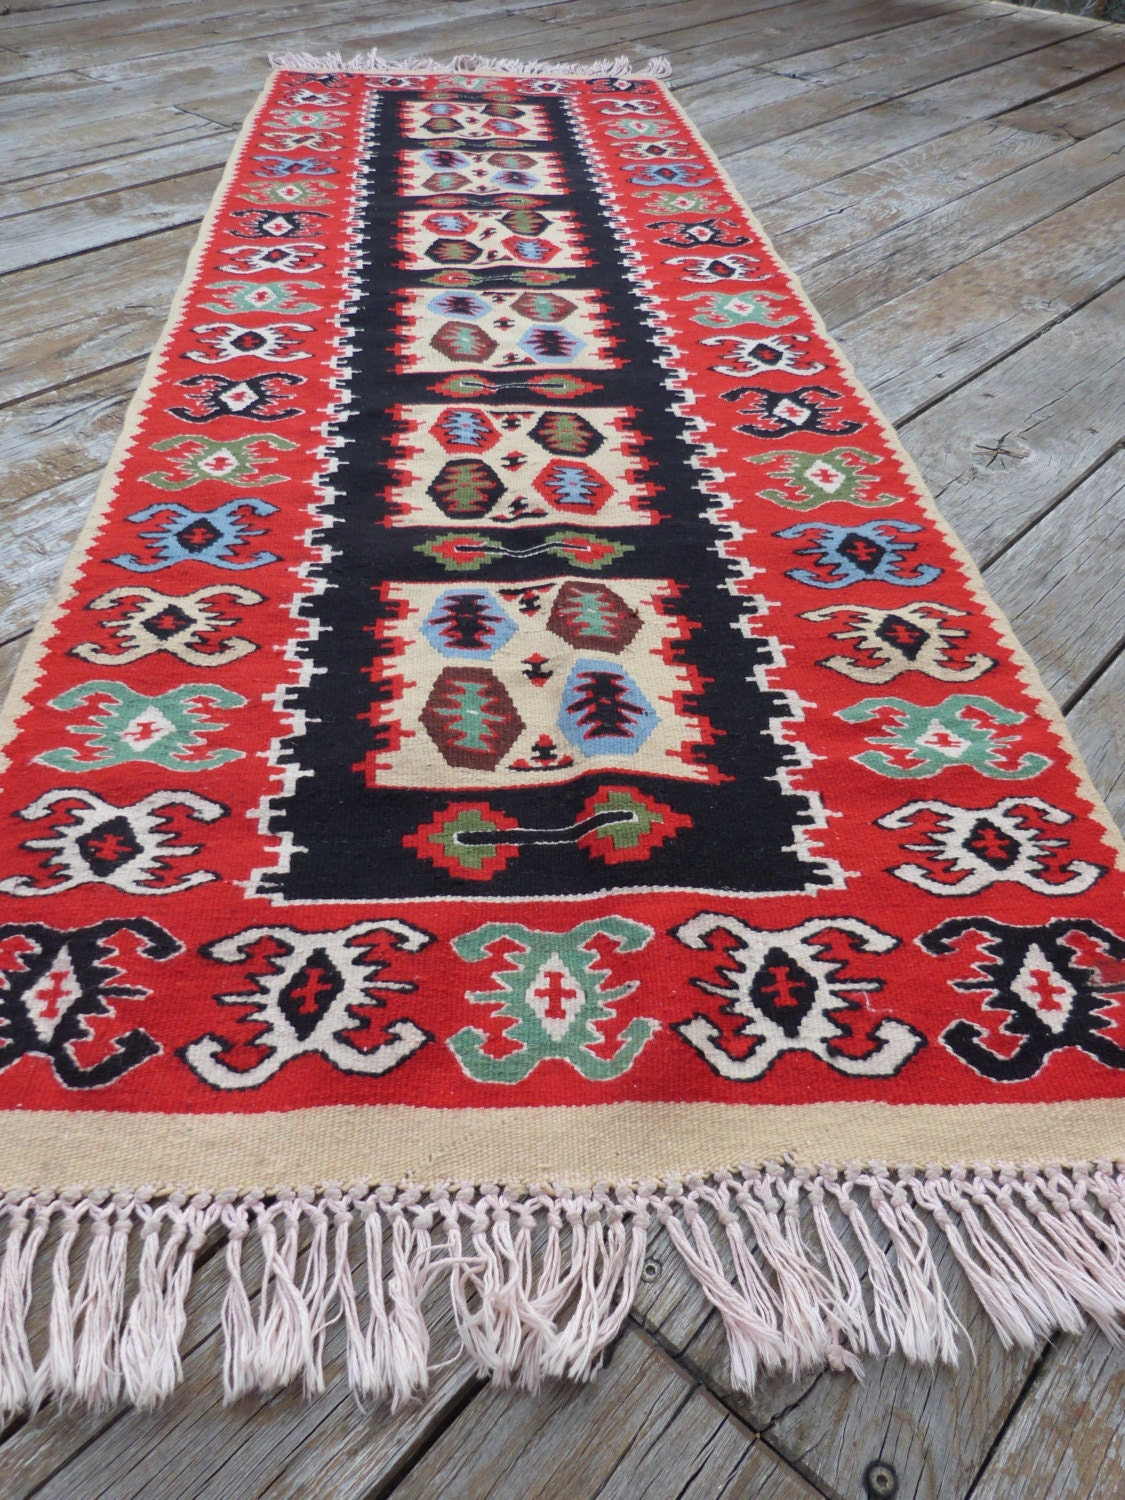 how to clean a woven rug